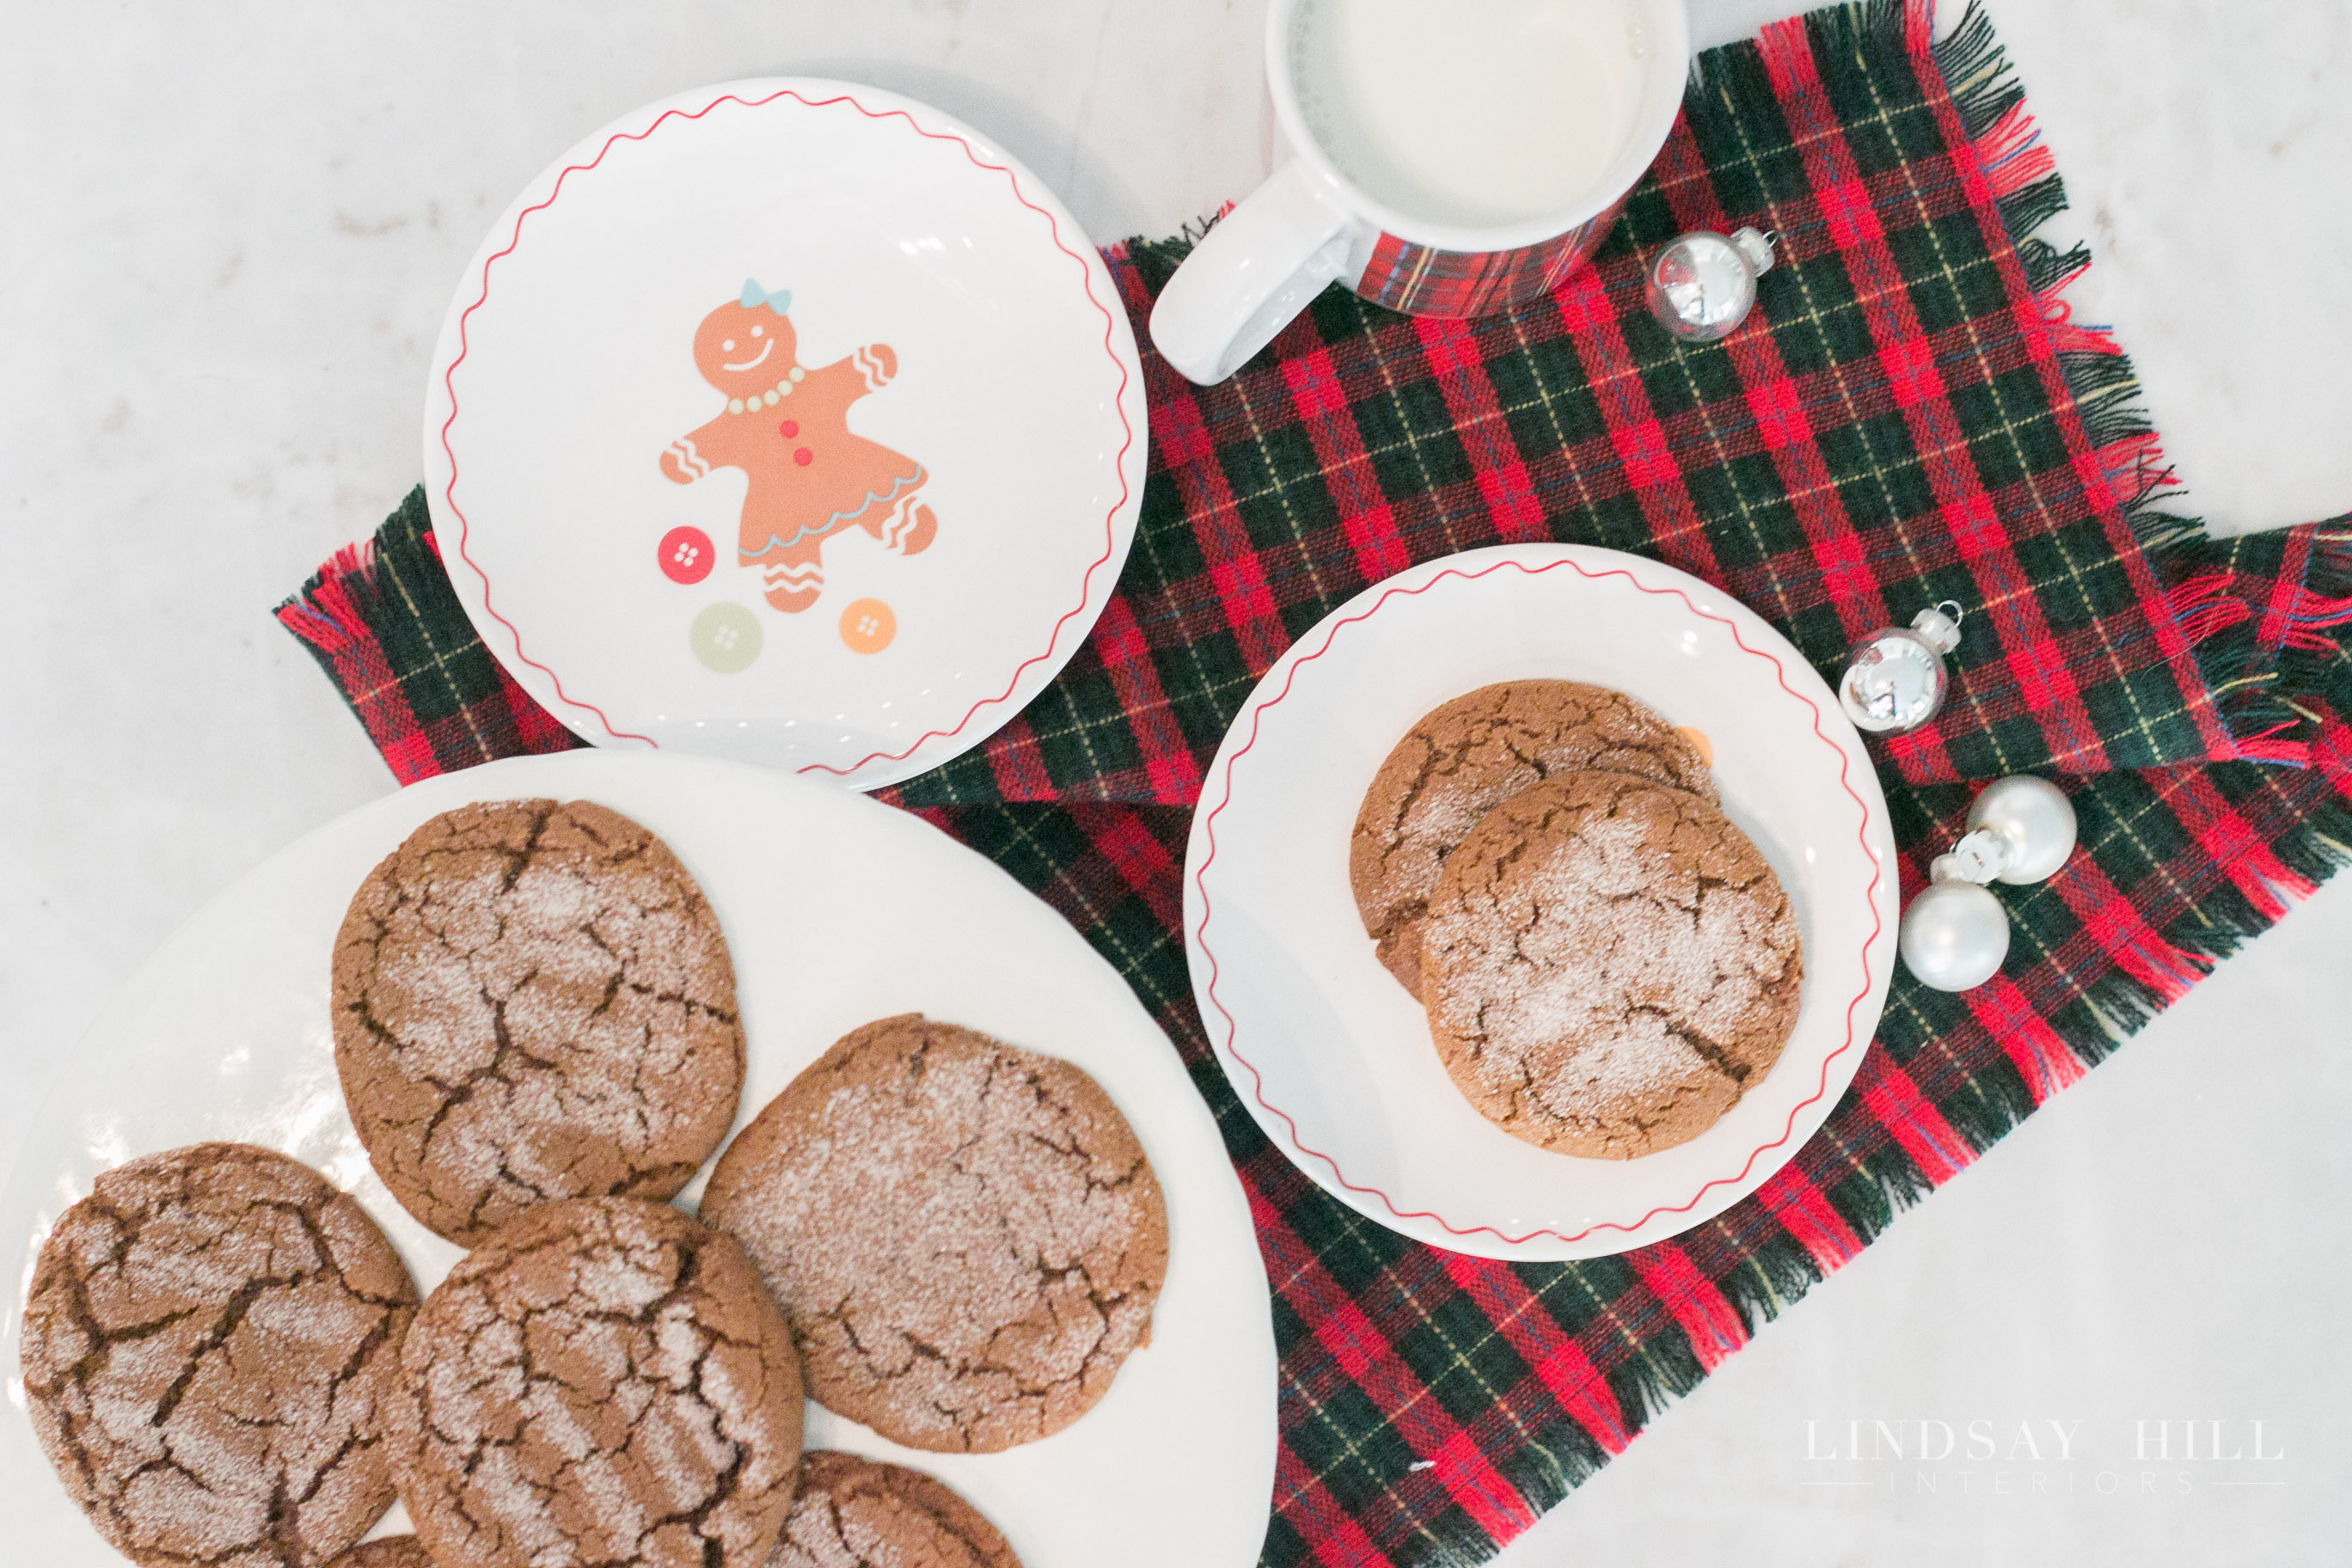 Lindsay Hill Interiors holiday home tour christmas molasses ginger cookies